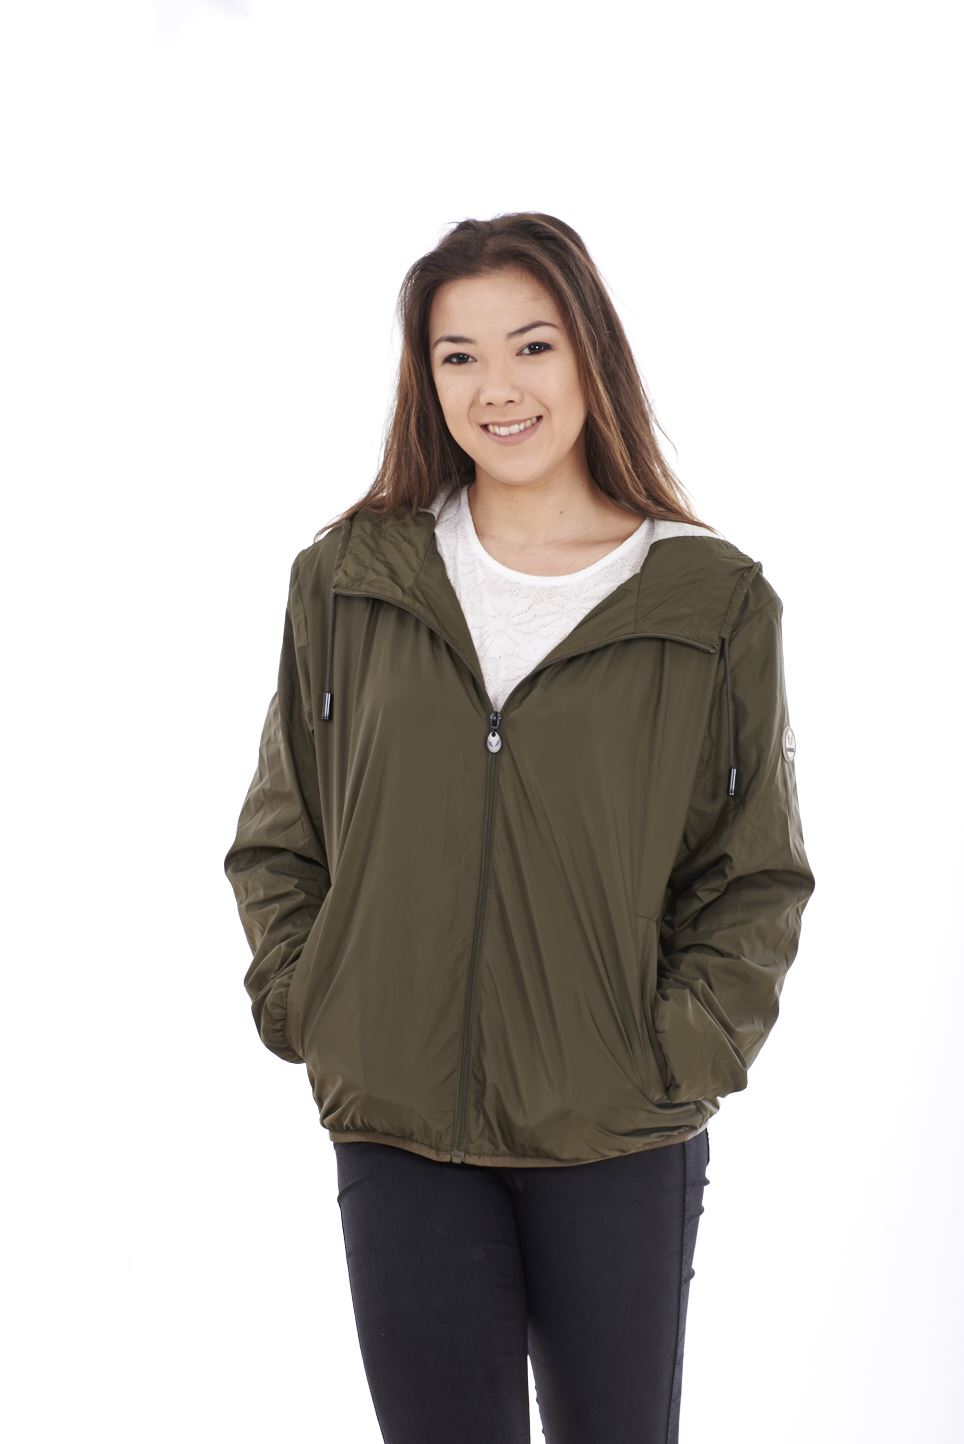 Ladies Hooded Jacket Plain Cotton Lining Lightweight Casual outwear S to XXL